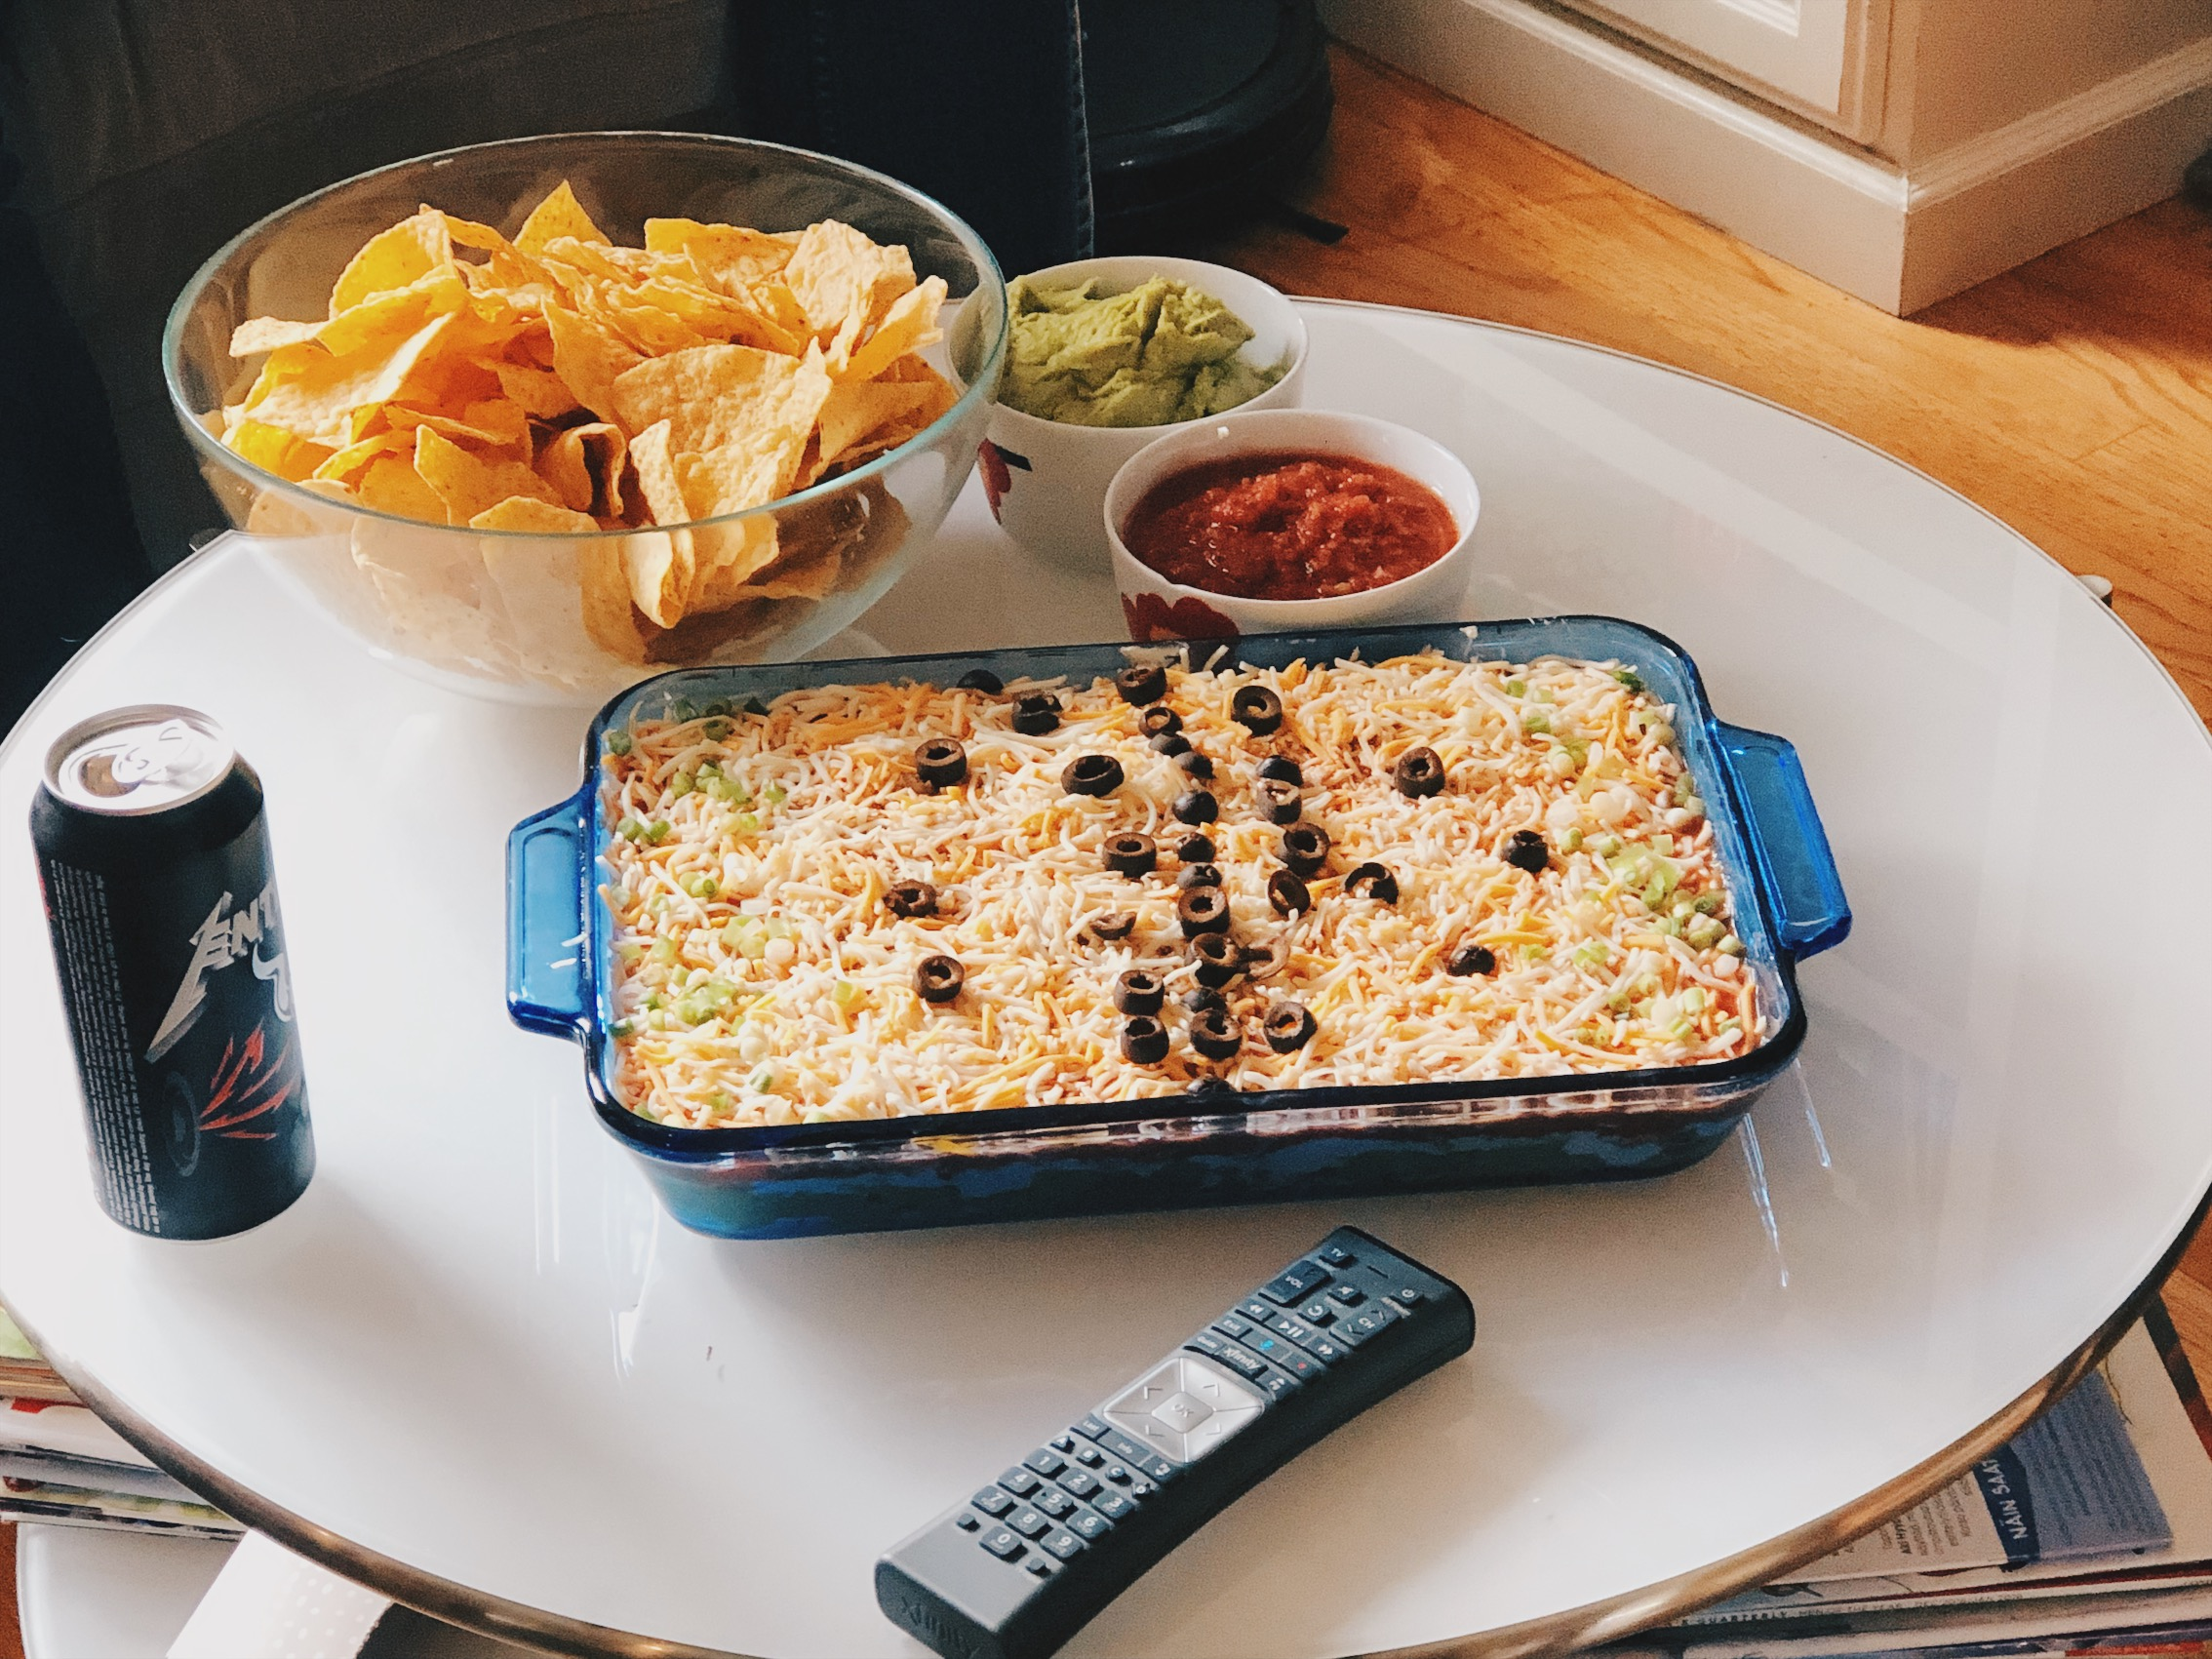 Our 7 layer dip; refried beans, guacamole, salsa, sour cream, cheese, olives, spring onion